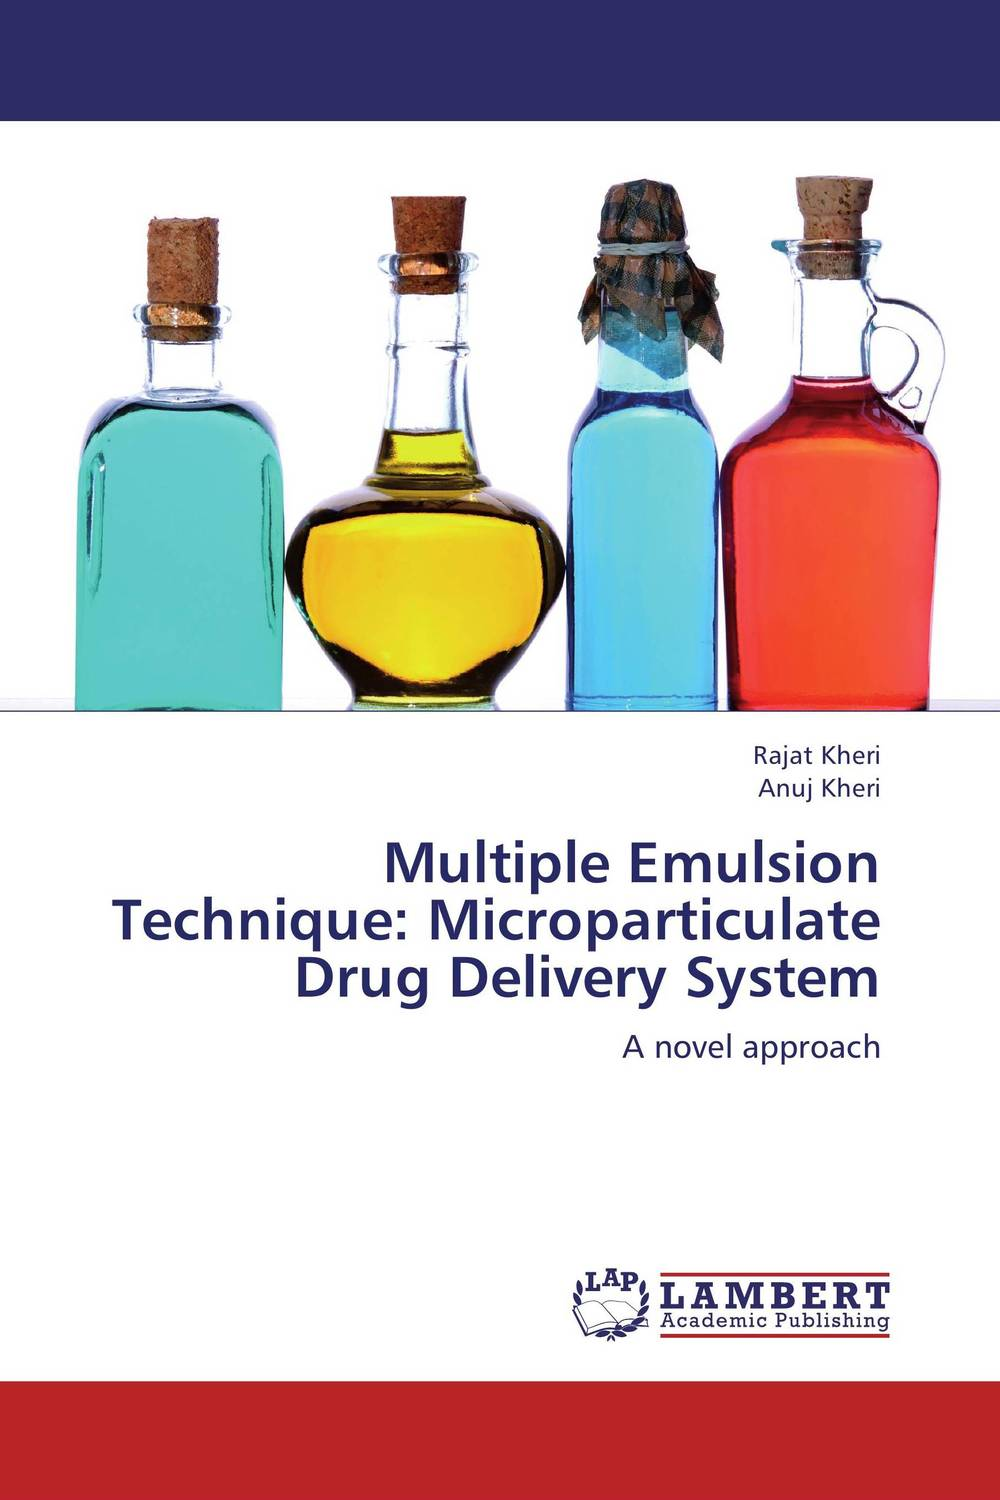 Multiple Emulsion Technique: Microparticulate Drug Delivery System abhishek kumar sah sunil k jain and manmohan singh jangdey a recent approaches in topical drug delivery system